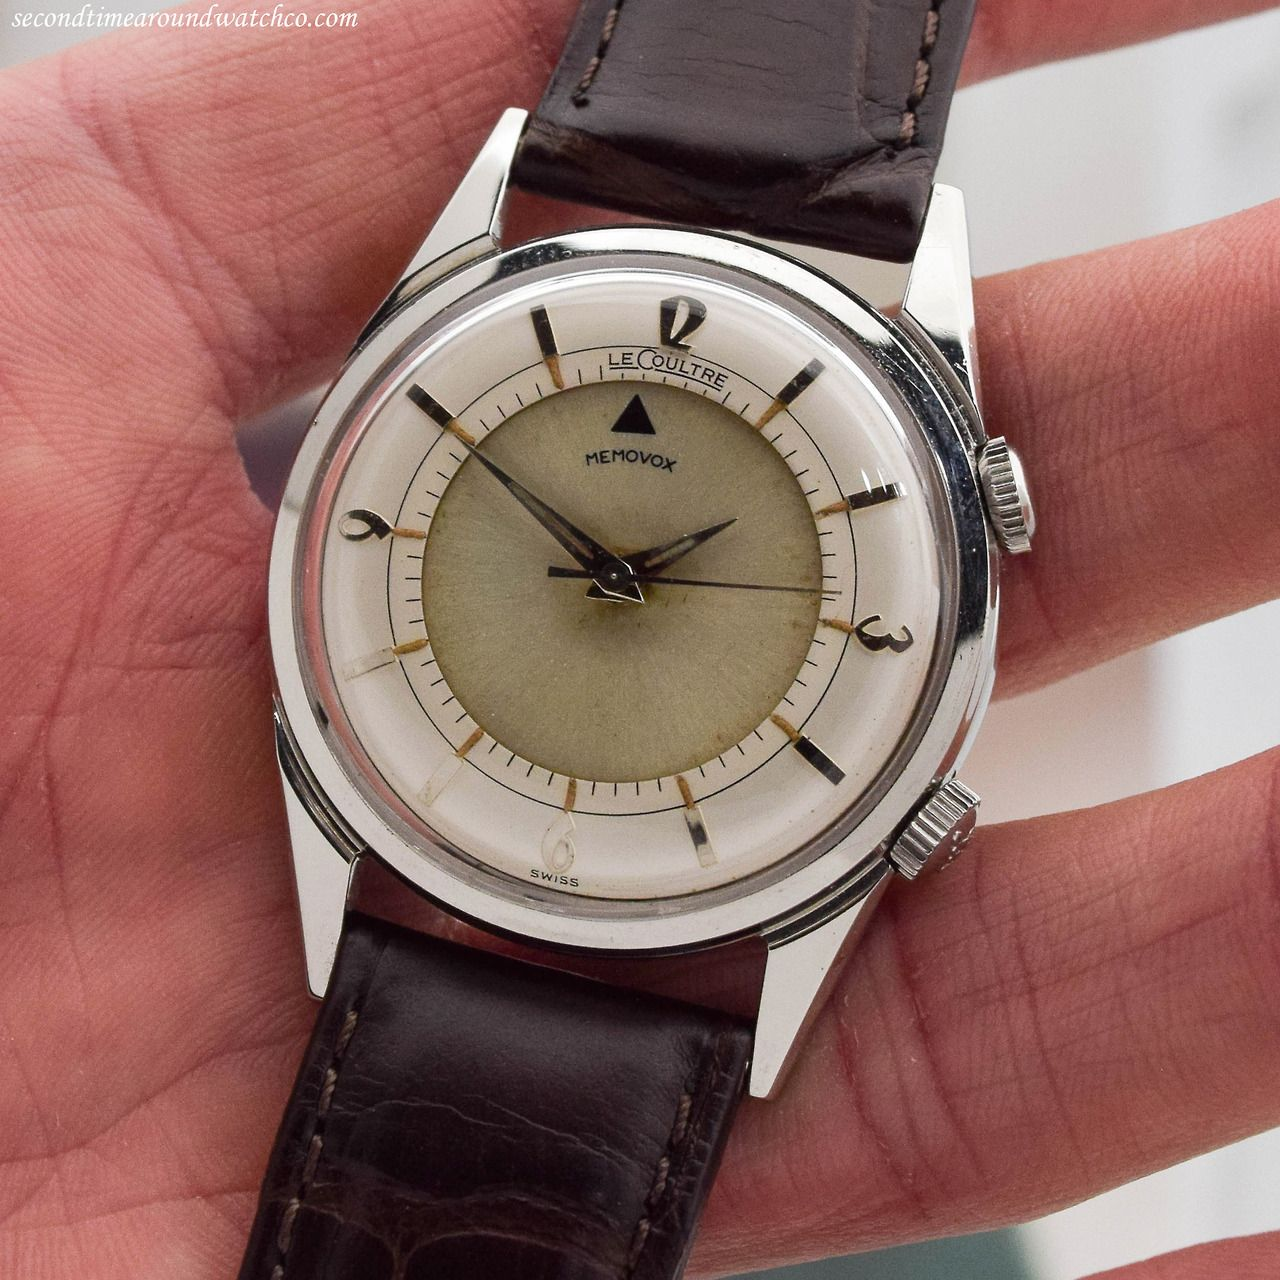 Bam! This is a sight to behold! Here we have a 1952 Jaeger LeCoultre Memovox Alarm Reference 2404. T... - #beauty #beverlyhills #instawatch #jaegerlecoultre #lecoultre #memovox #menswear #stawc #style #stylized #vintage #vintagestyle #vintagewatch #watches #watchesoftumblr #watchgeek #watchgram #watchpassion #whatsonmywrist #womenswear #wristcandy #wristgame #wristporn